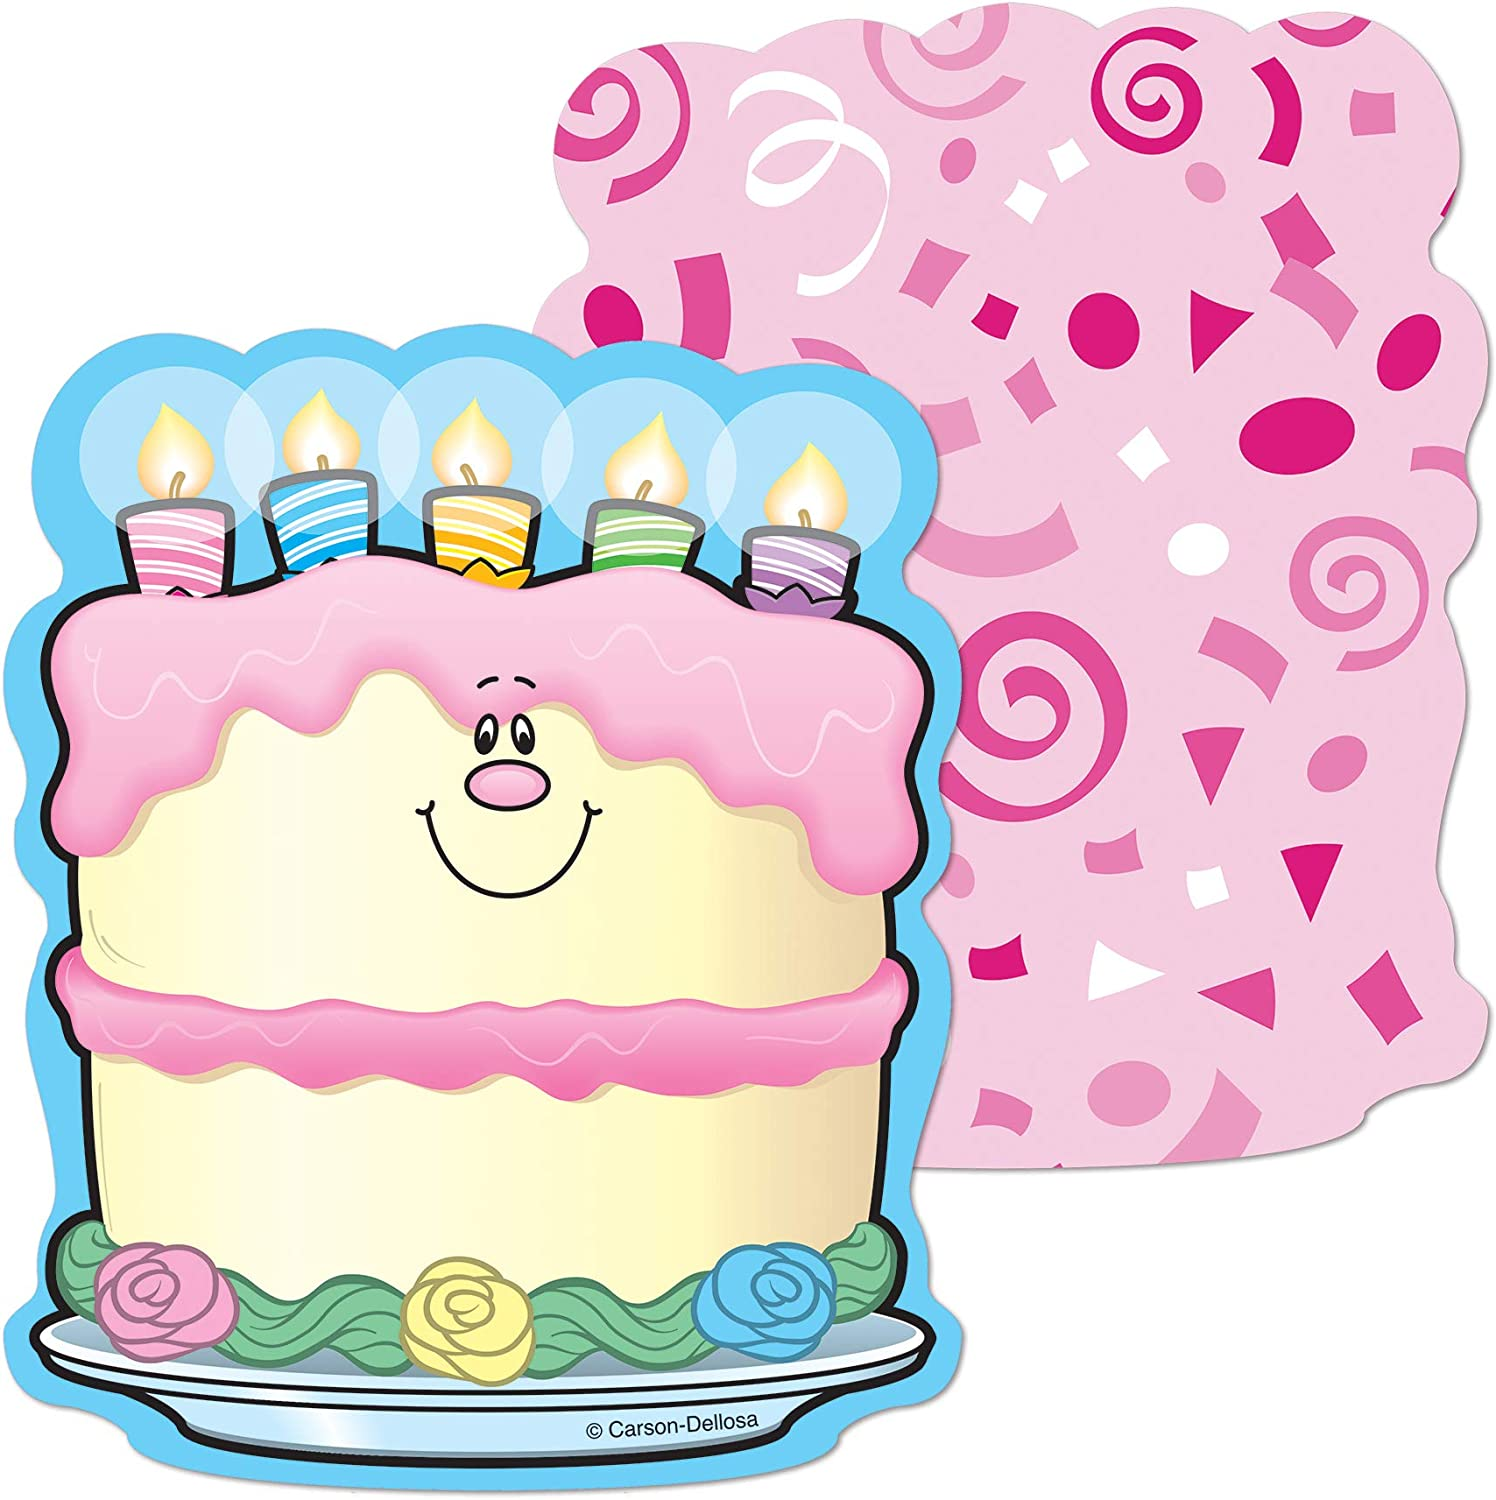 Awe Inspiring Birthday Cakes Mini Cut Outs Carson Dellosa Publishing Company Funny Birthday Cards Online Inifofree Goldxyz